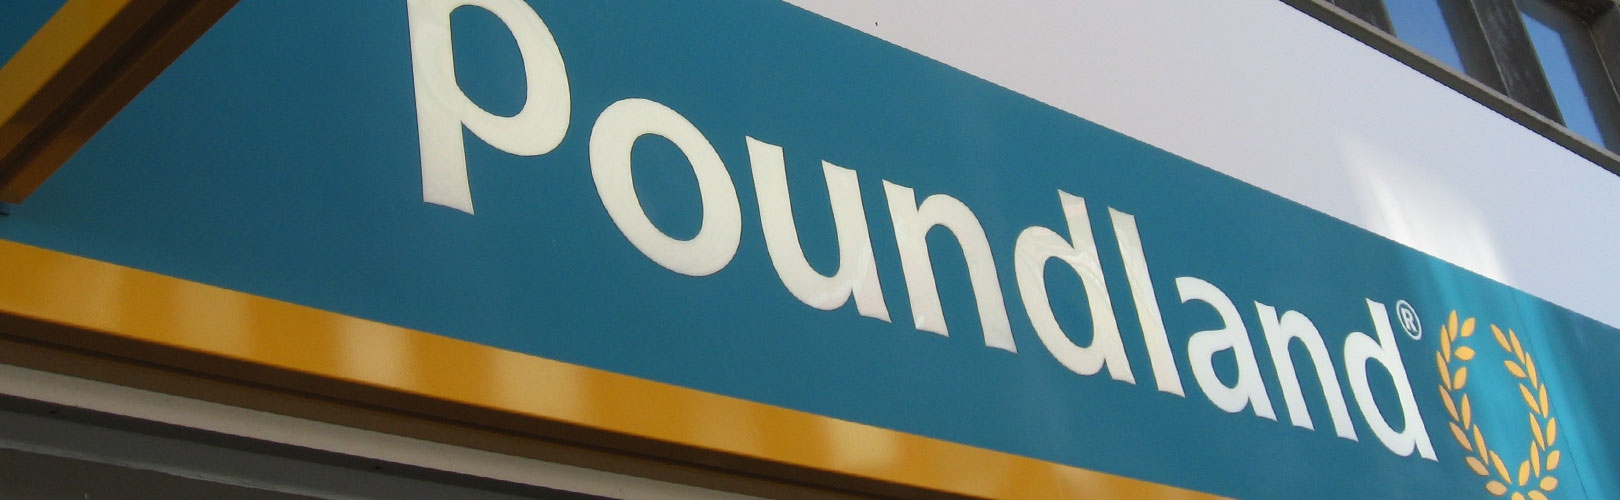 Photo: Poundland rollout project management